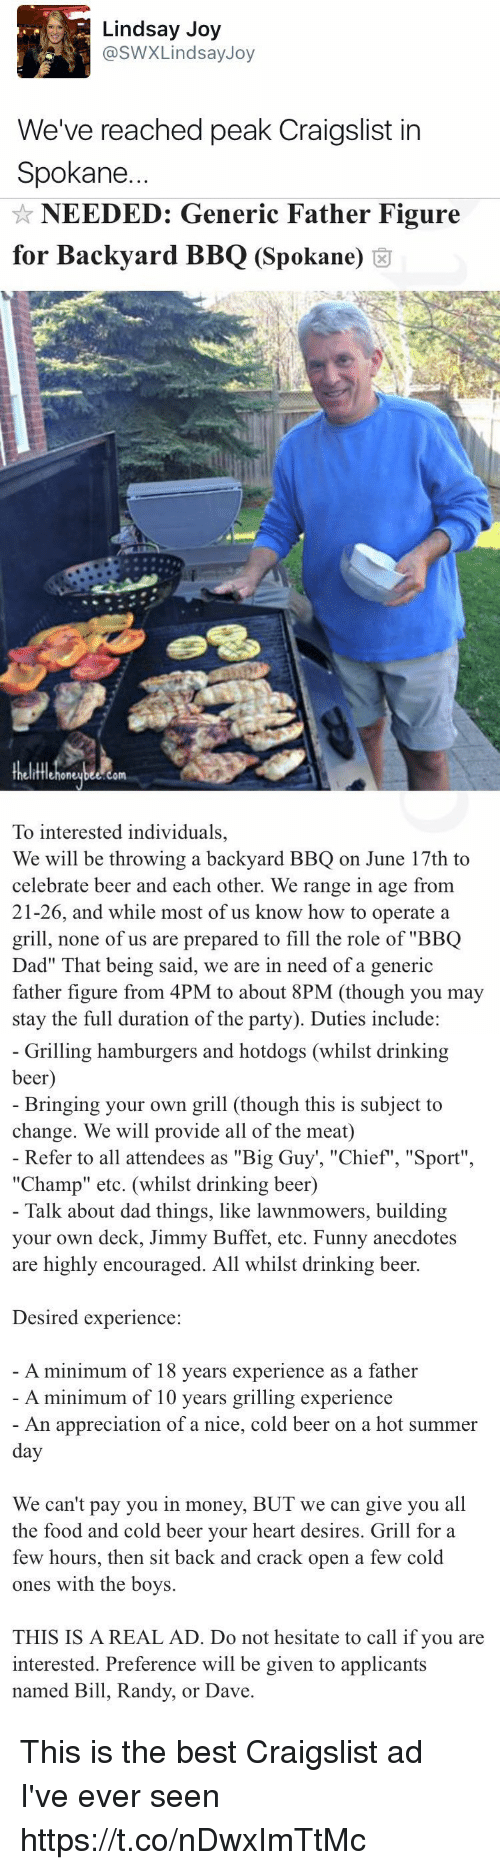 """Referance: Lindsay Joy  @SWX Lindsay Joy  We've reached peak Craigslist in  Spokane.   NEEDED: Generic Father Figure  for Backyard BBQ (Spokane)  om  To interested individuals,  We will be throwing a backyard BBQ on June 17th to  celebrate beer and each other. We range in age from  21-26, and while most of us know how to operate a  grill, none of us are prepared to fill the role of """"BBQ  Dad"""" hat being said, we are in need of a generic  father figure from 4PM to about  8PM (though you may  stay the full duration of the party). Duties include:   Grilling hamburgers and hotdogs (whilst drinking  beer  Bringing your own grill (though this is subject to  change. We will provide all of the meat)  Refer to all attendees as """"Big Guy """"Chief"""", """"Sport""""  """"Champ"""" etc. (whilst drinking beer)  Talk about dad things, like lawnmowers, building  your own deck, Jimmy Buffet, etc. Funny anecdotes  are highly encouraged. All whilst drinking beer.  Desired experience  A minimum of 18 years experience as a father  A minimum of 10 years grilling experience  An appreciation of a nice, cold beer on a hot summer  day  We can't pay you in money, BUT we can give you all  the food and cold beer your heart desires. Grill for a  few hours, then sit back and crack open a few cold  ones with the boys.  THIS IS A REAL AD. Do not hesitate to call if you are  interested. Preference will be given to applicants  named Bill, Randy, or Dave This is the best Craigslist ad I've ever seen https://t.co/nDwxImTtMc"""